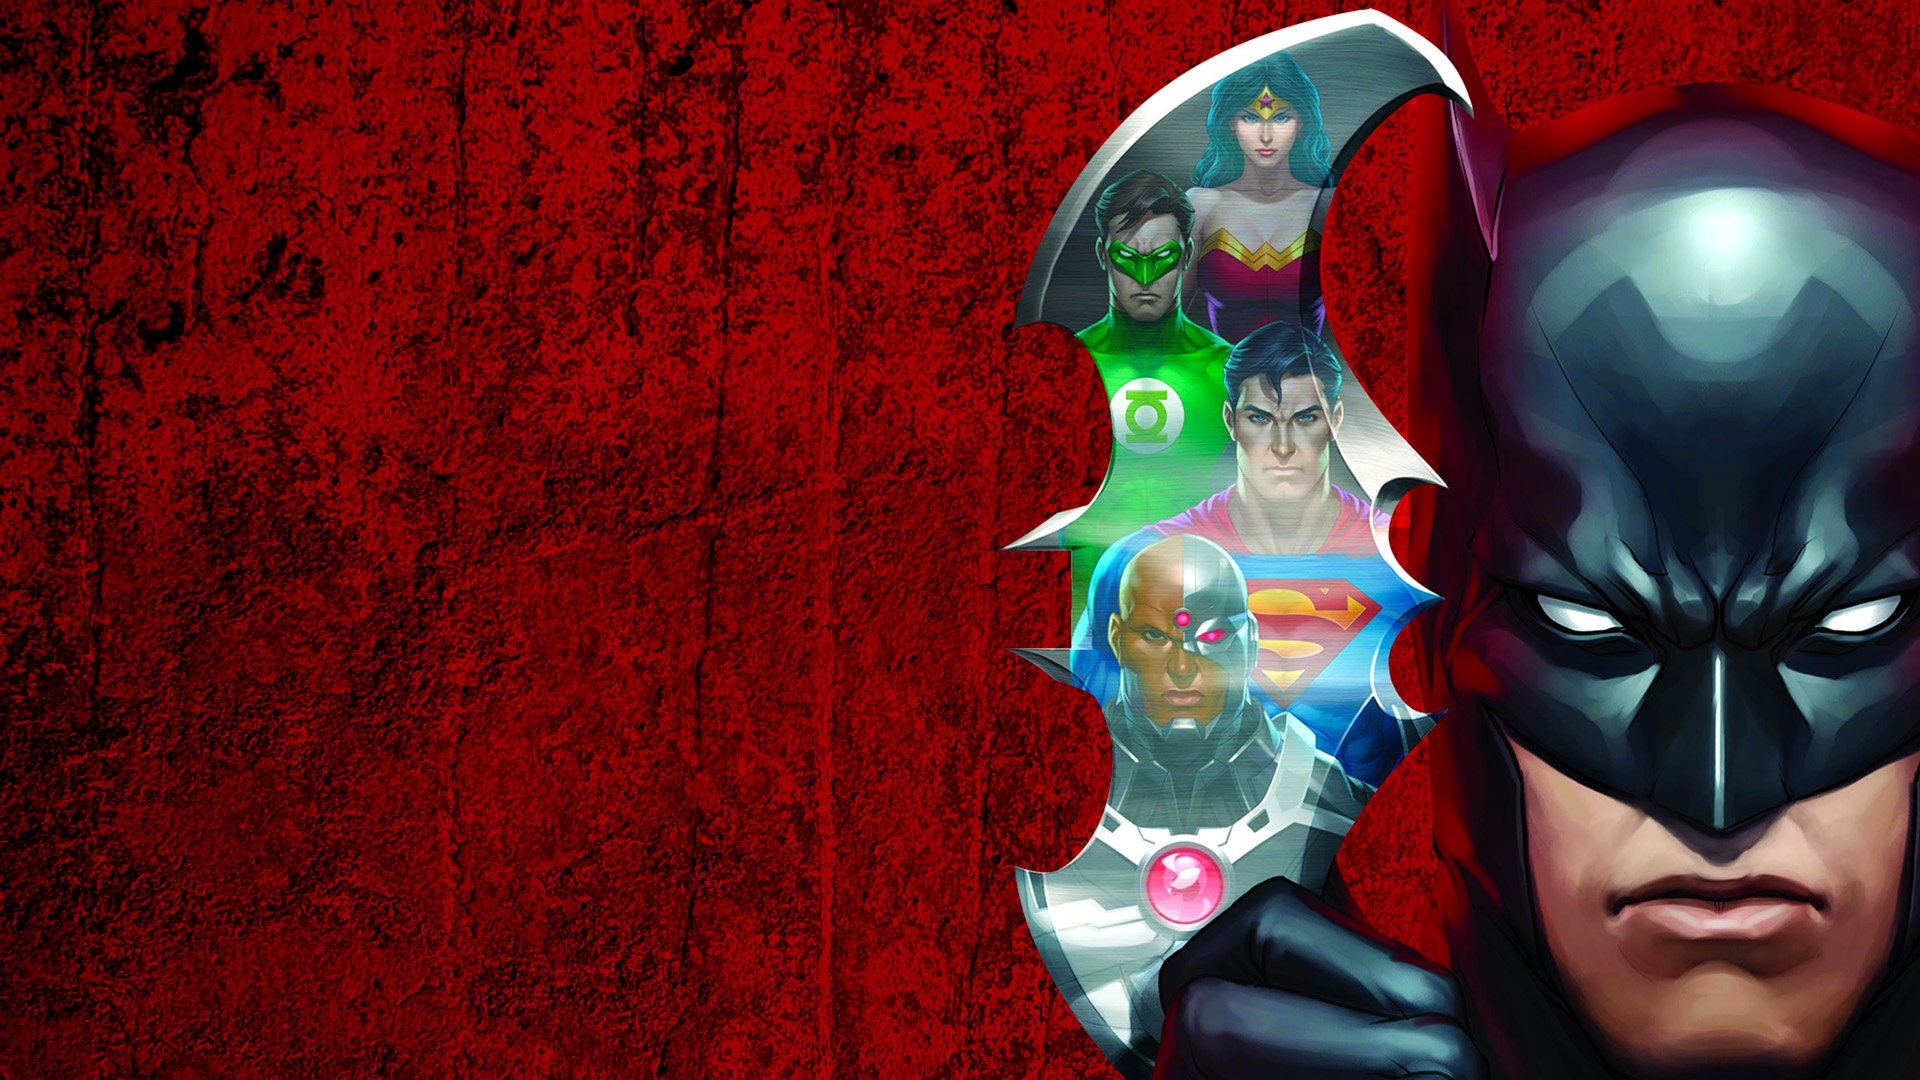 Doom Wallpaper Hd Justice League Doom Full Hd Wallpaper And Background